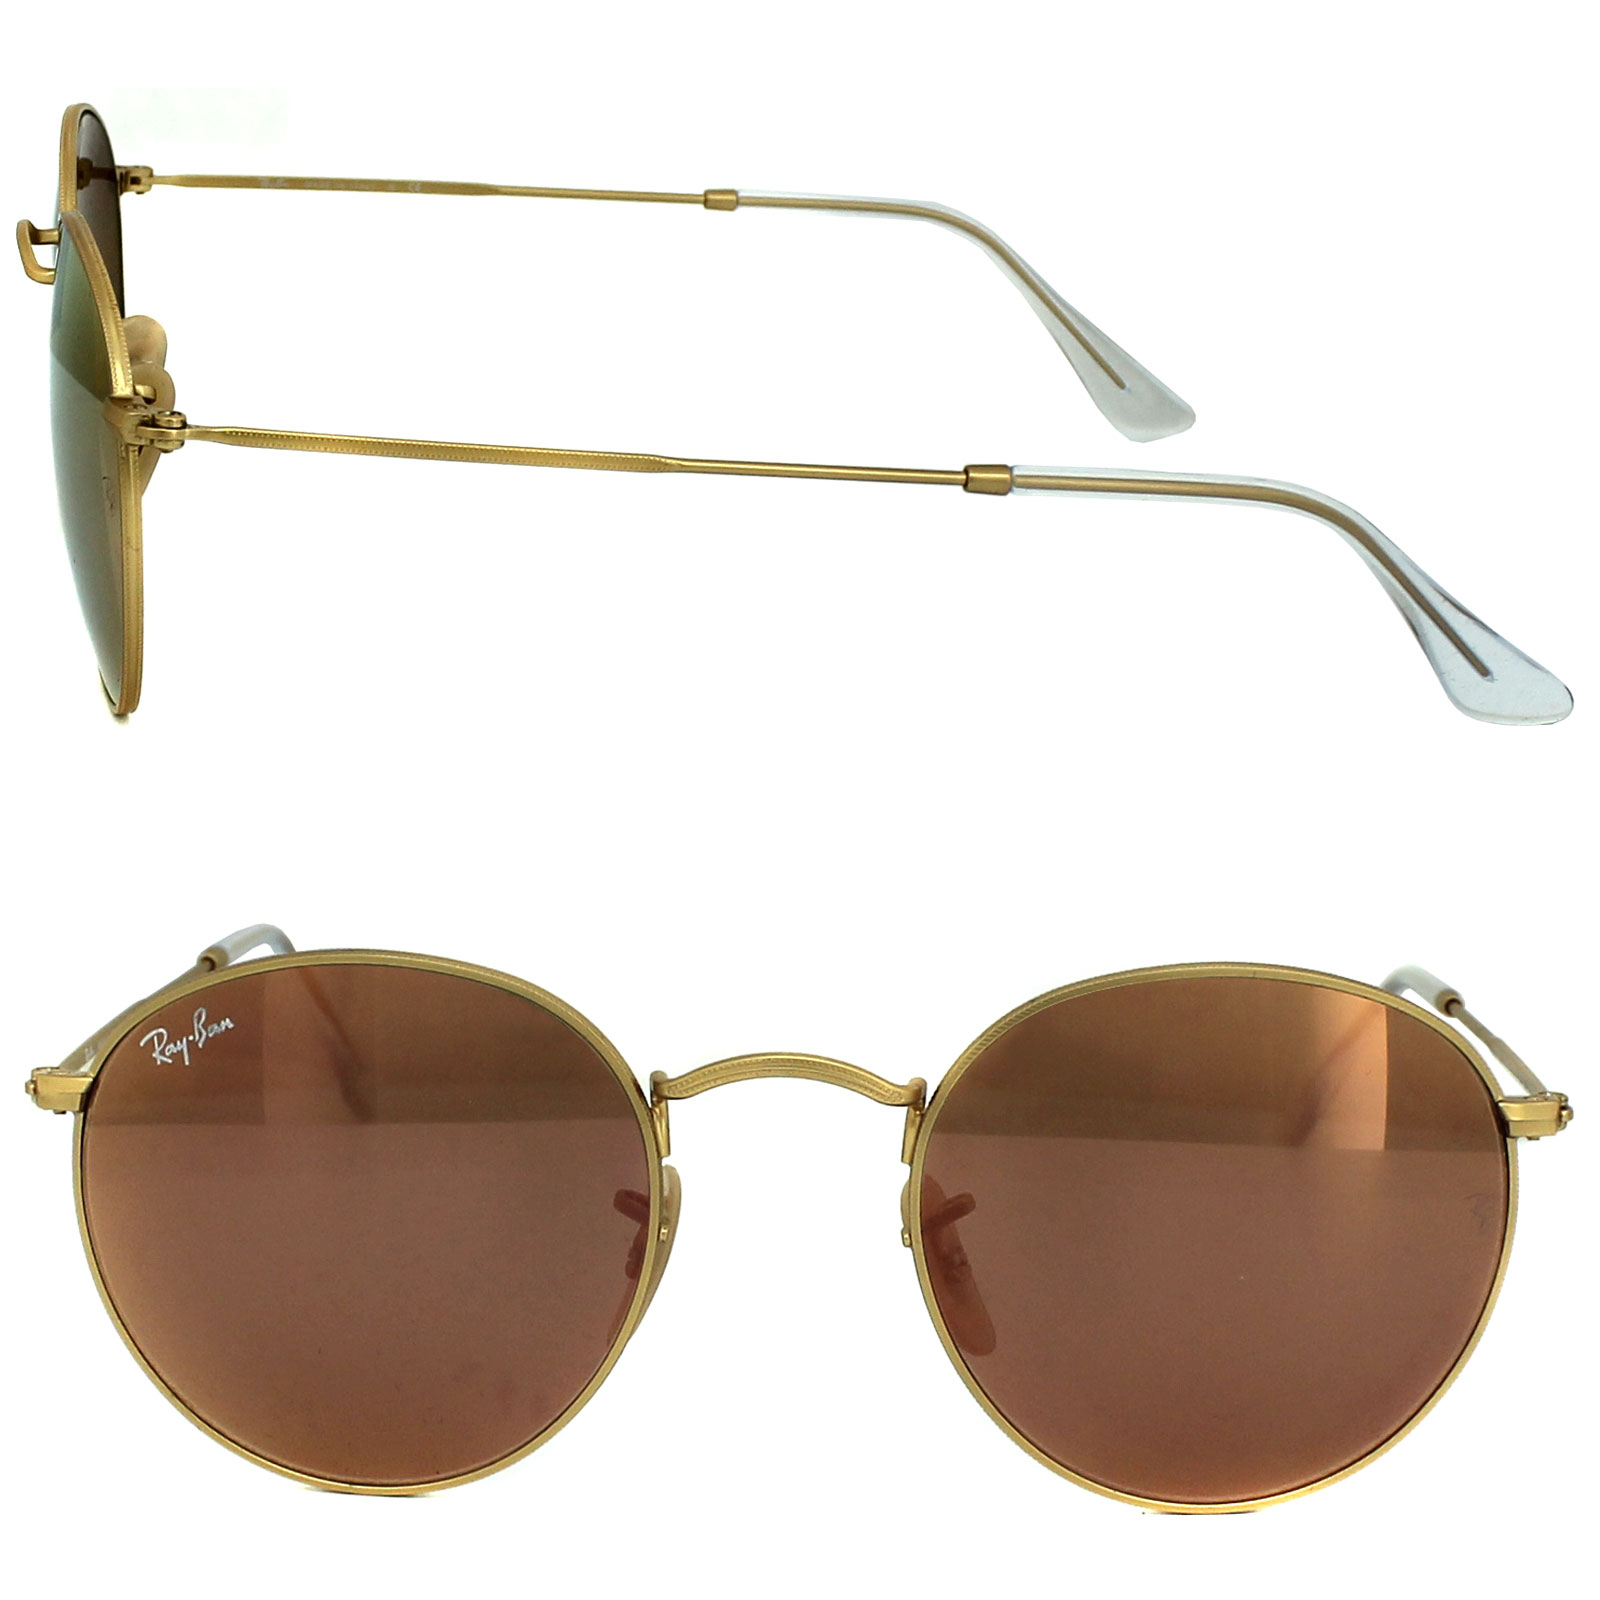 5a69a86da35536 Sentinel Ray-Ban Sunglasses Round Metal 3447 112 Z2 Gold Copper Flash  Mirror M